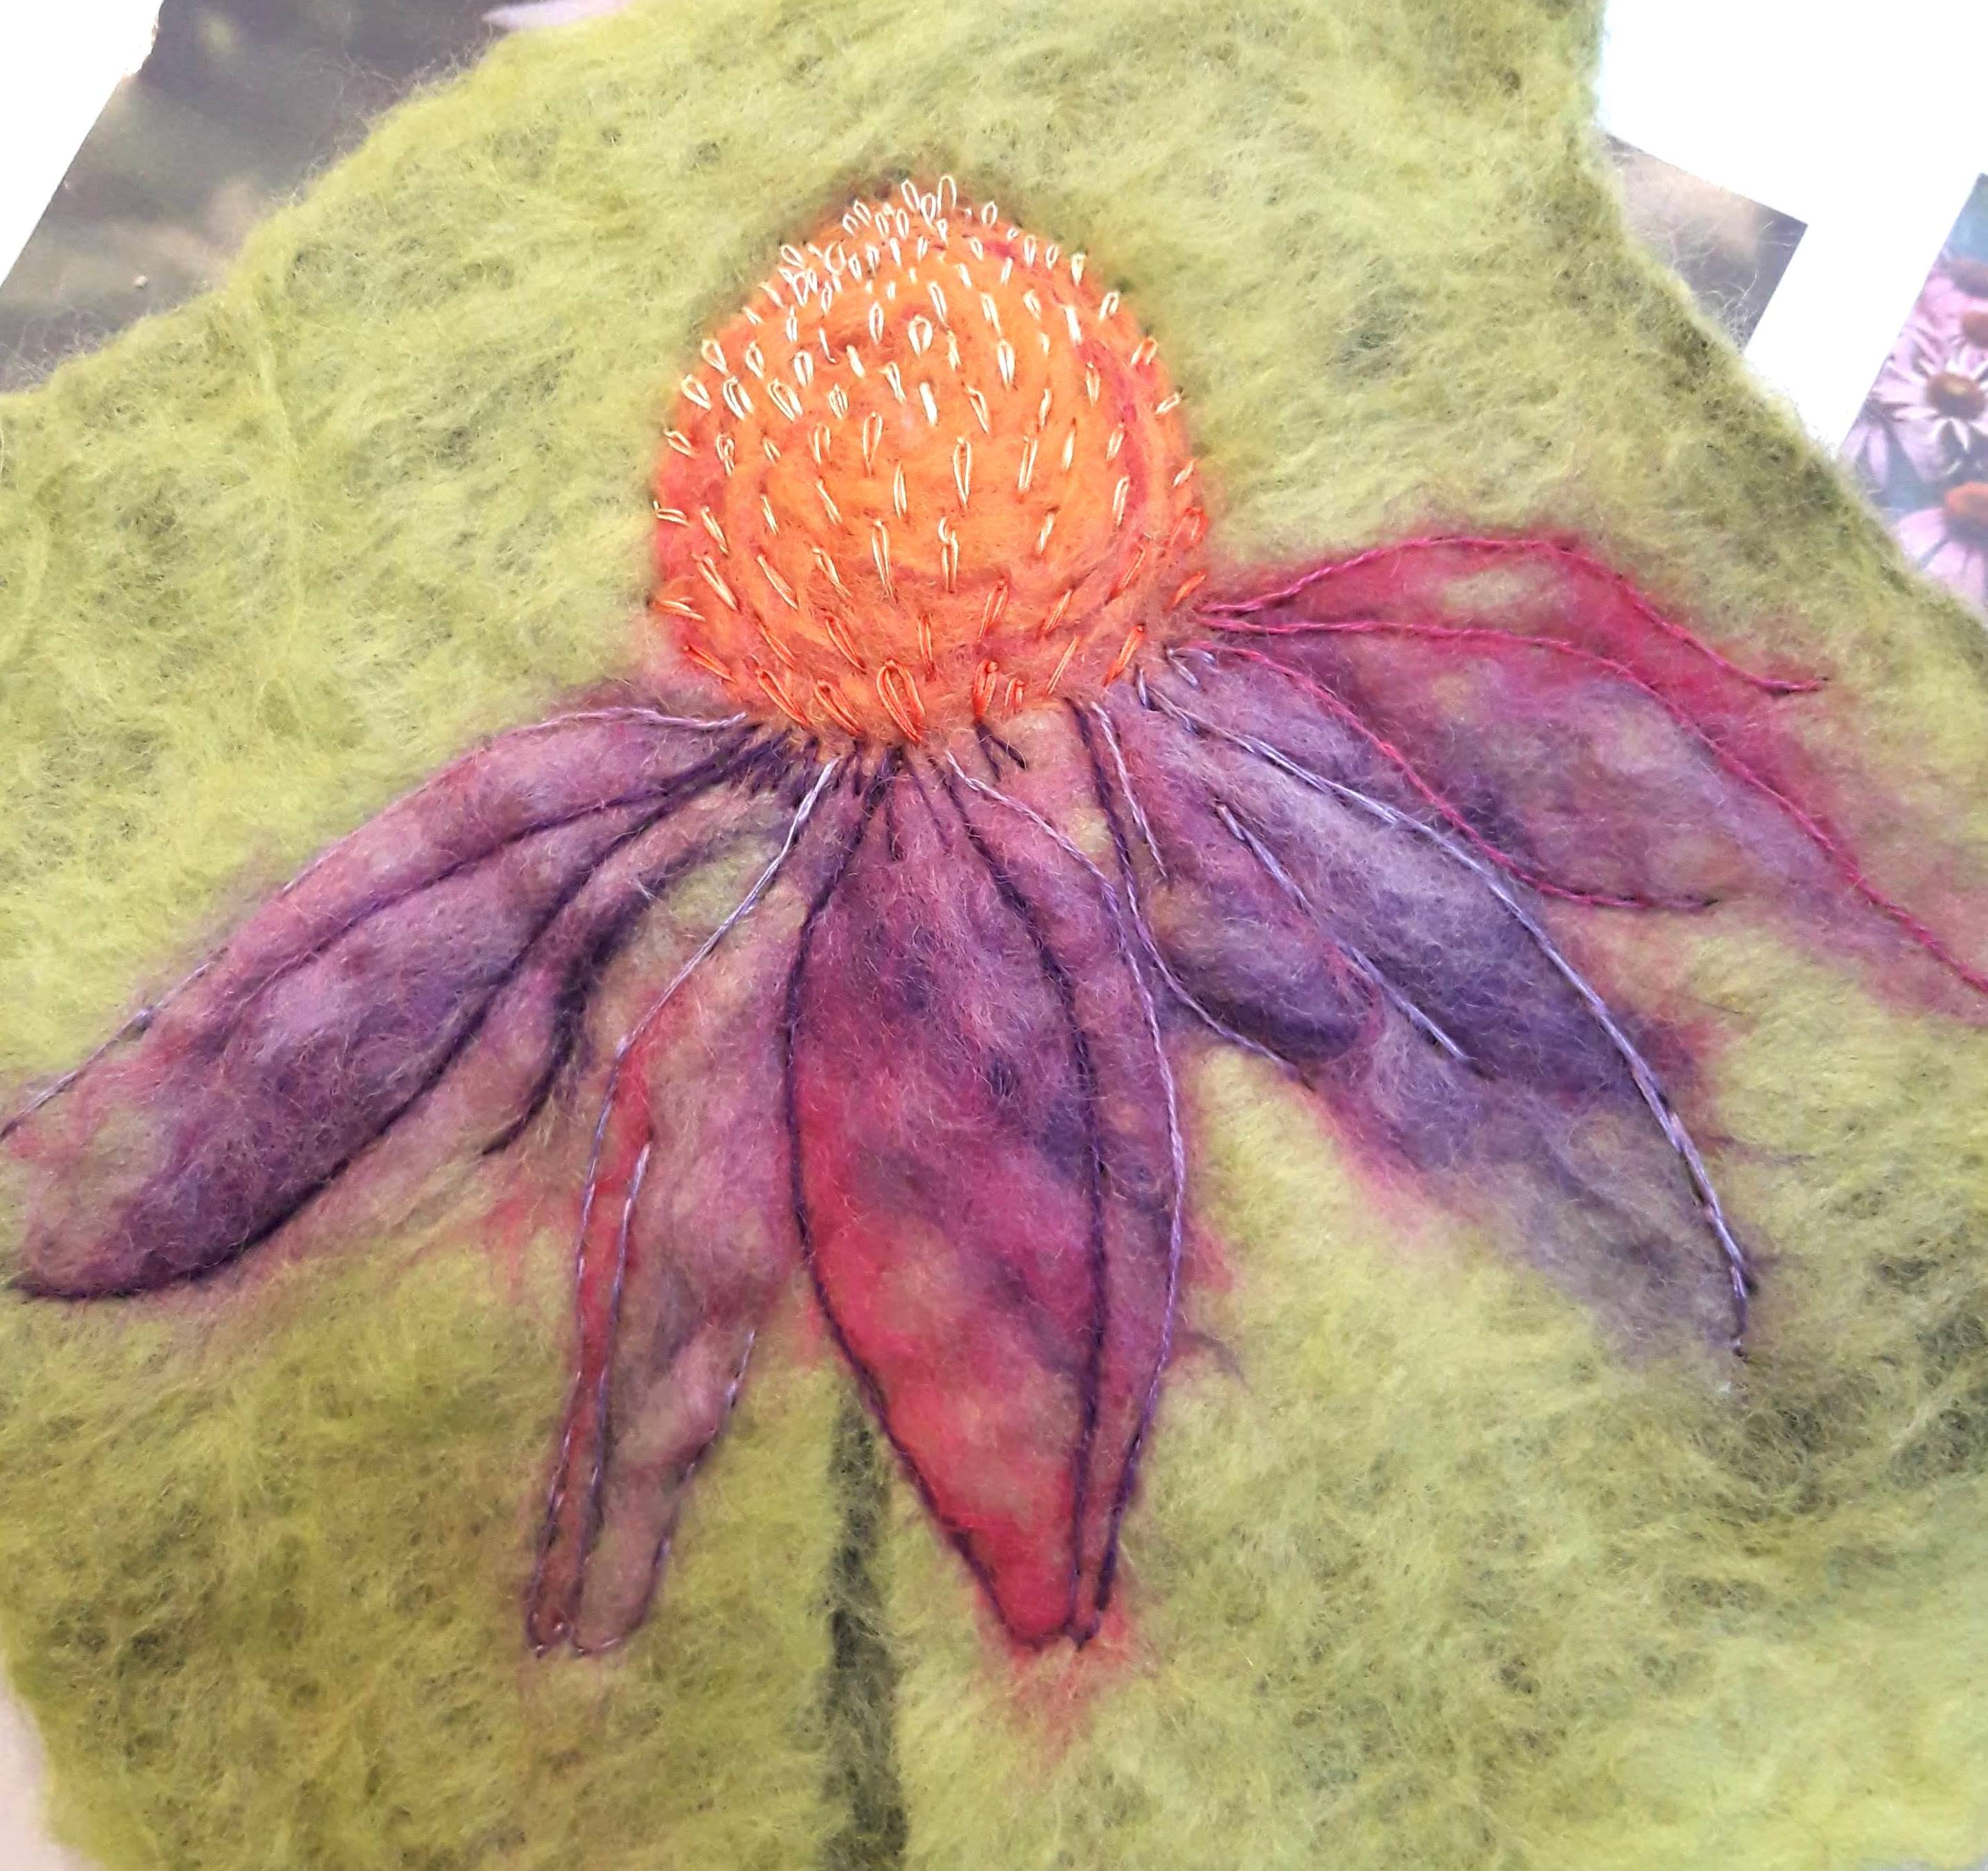 Felt Art Workshop in Cumbria